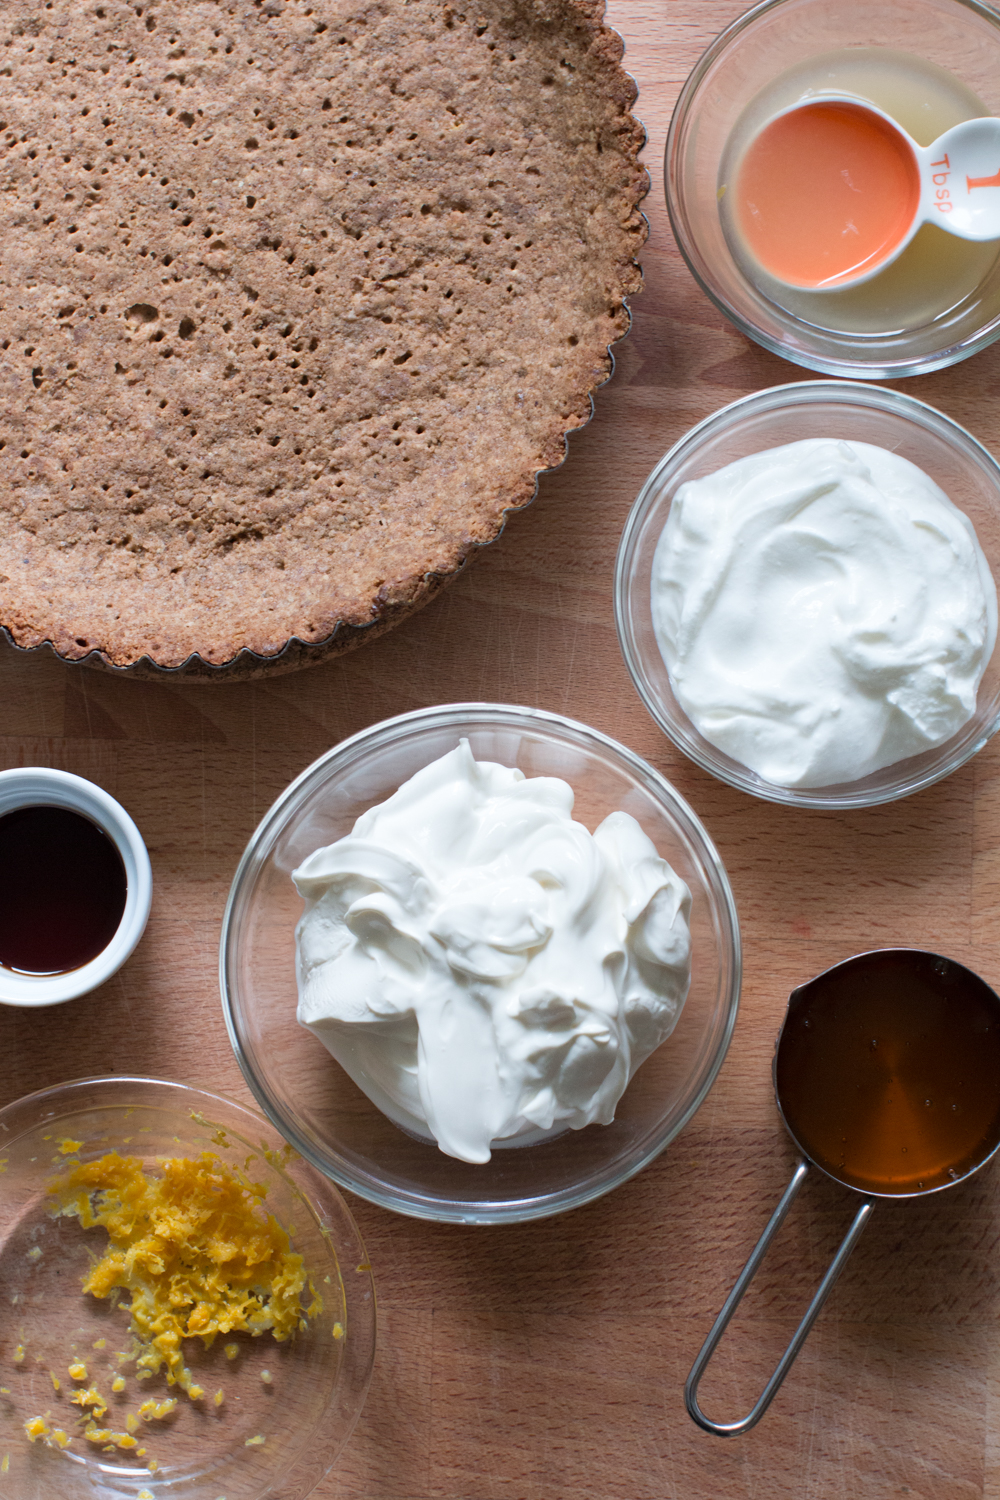 Meyer Lemon Ginger Molasses Tart filling